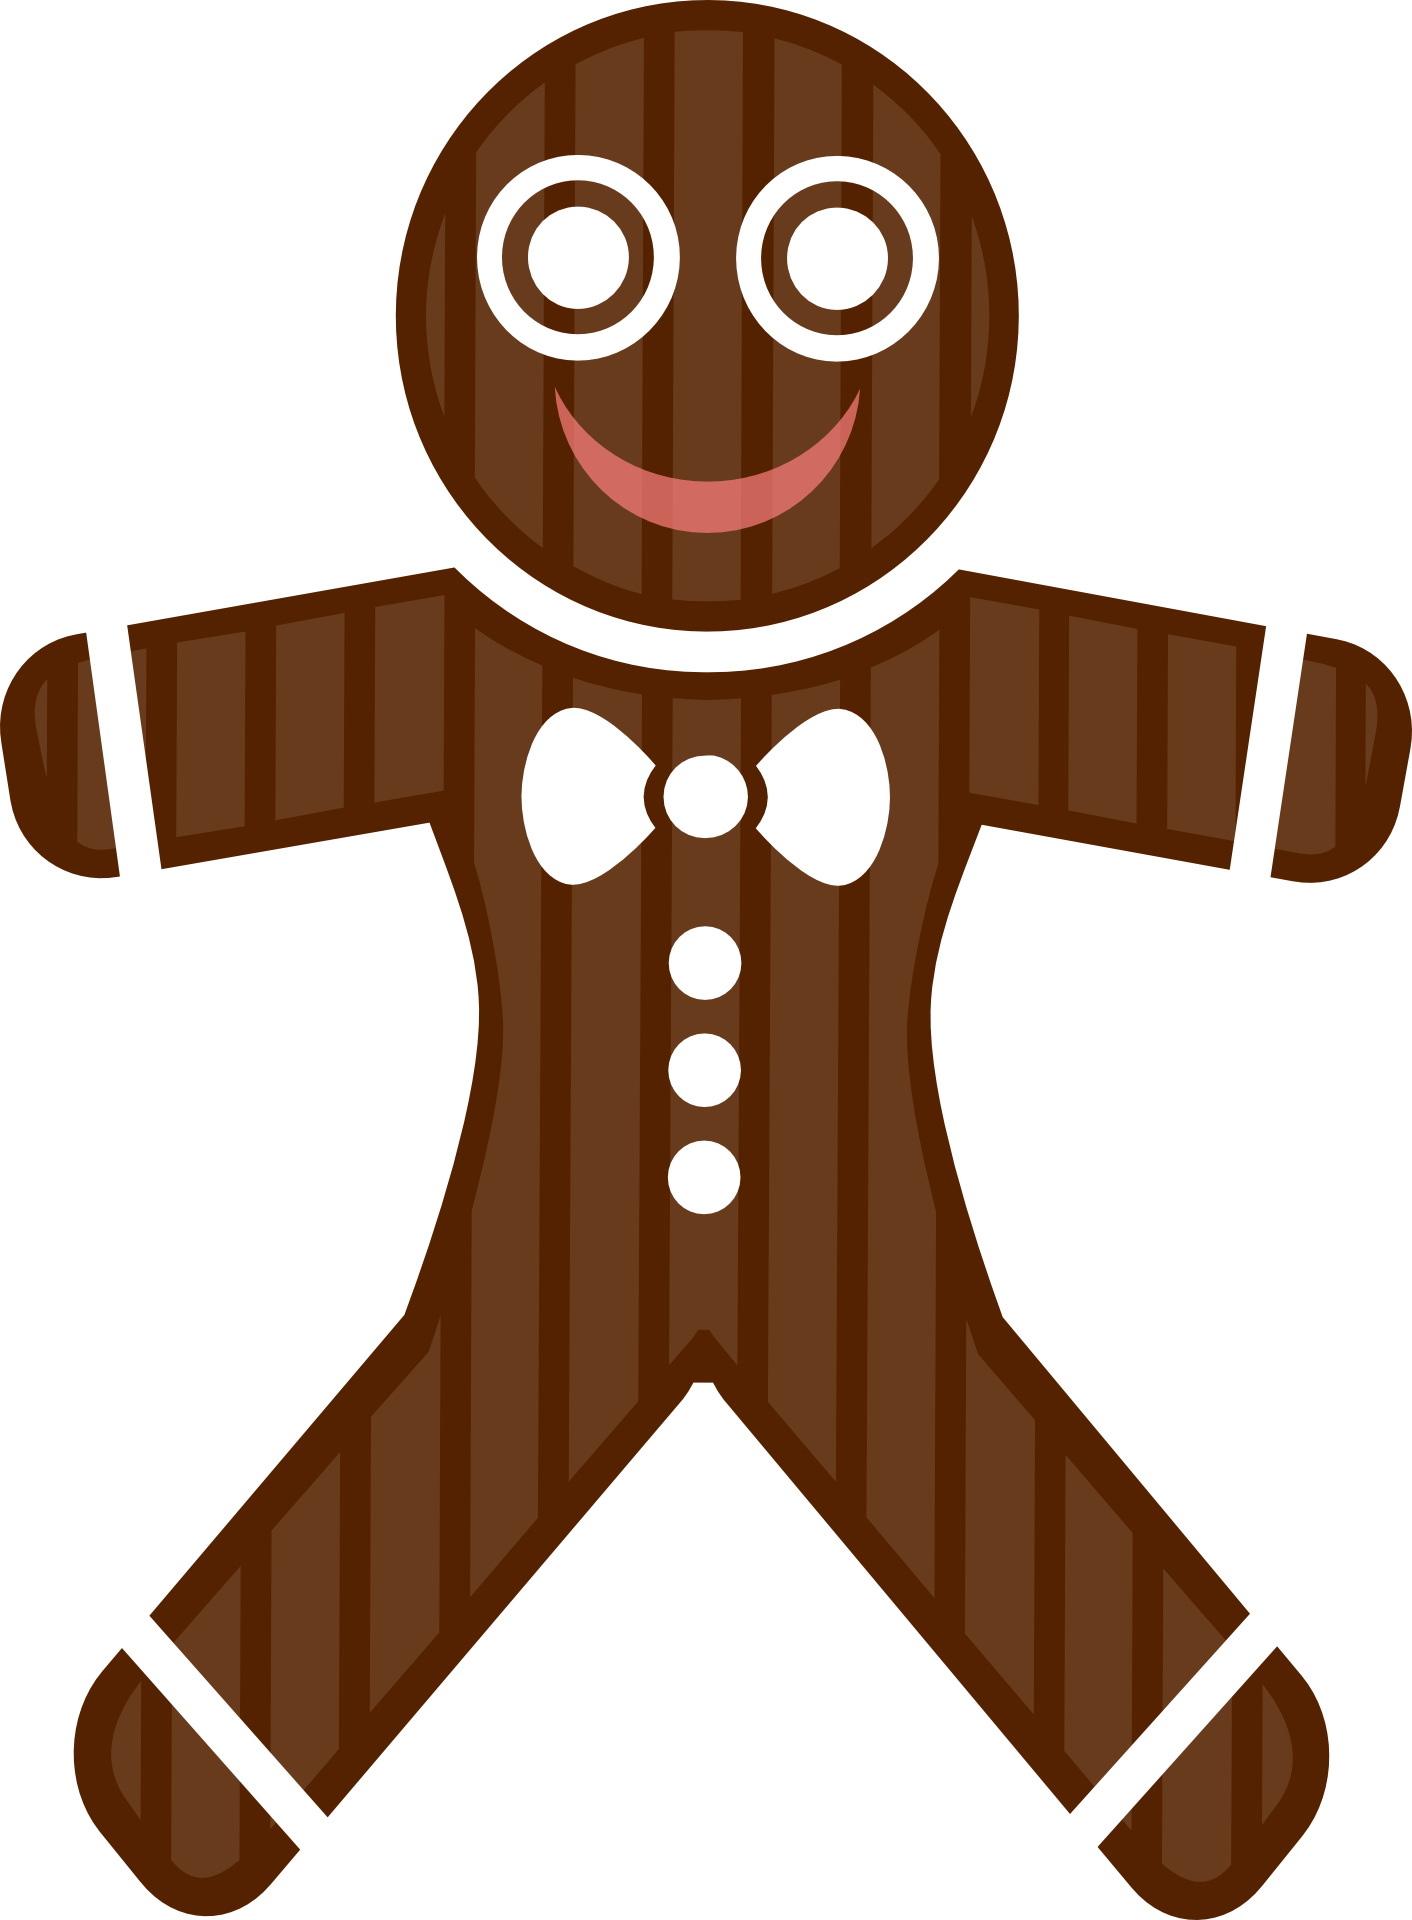 jpg freeuse download Gingerbread House Candy Clipart at GetDrawings